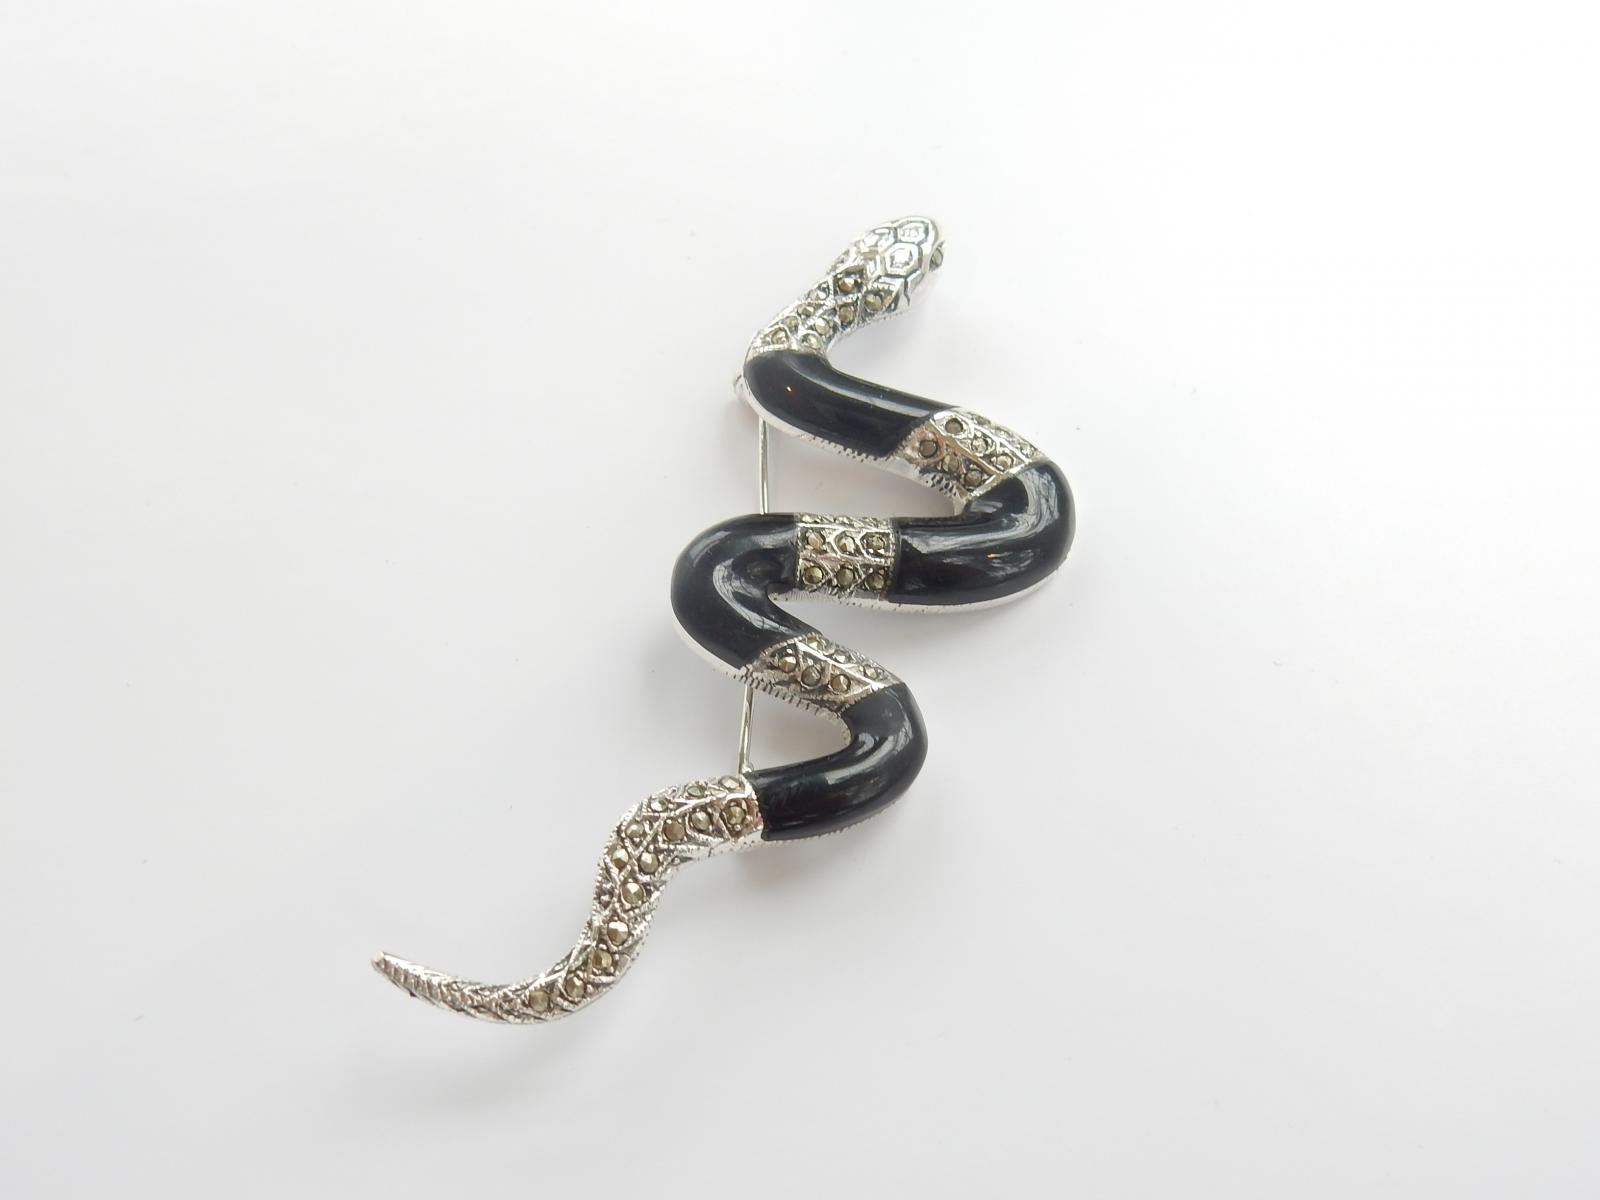 Photo of Silver & Black Onyx Snake Brooch